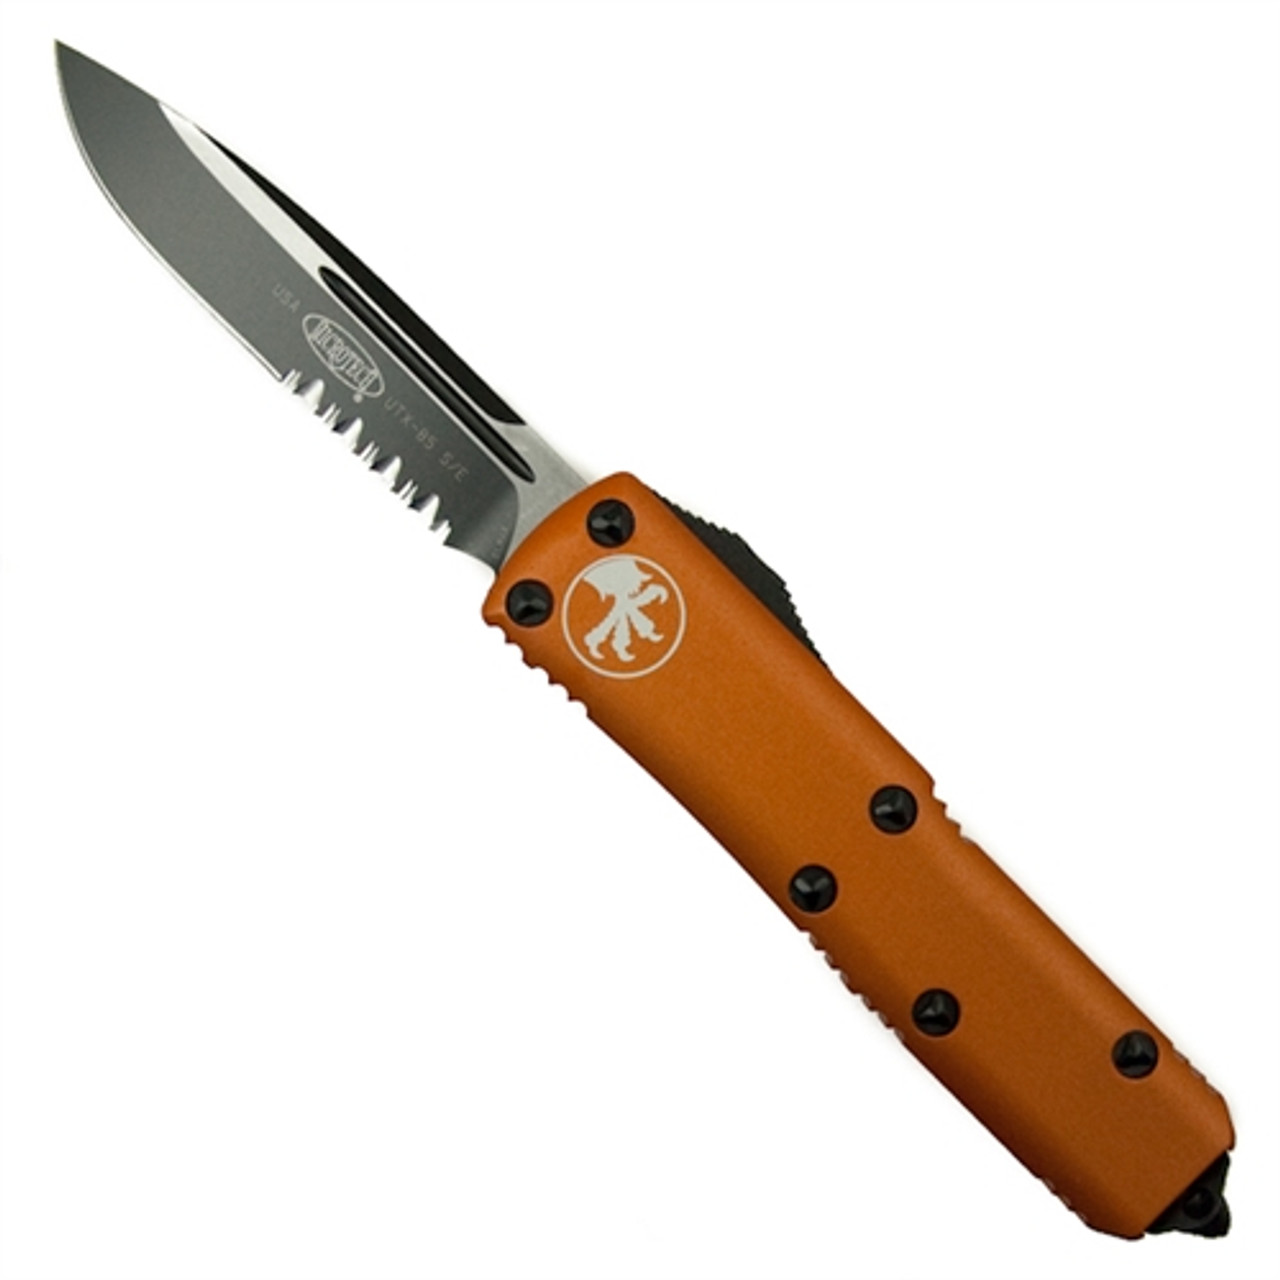 Microtech 231-2OR Orange UTX-85 S/E OTF Auto Knife, Black Combo Blade